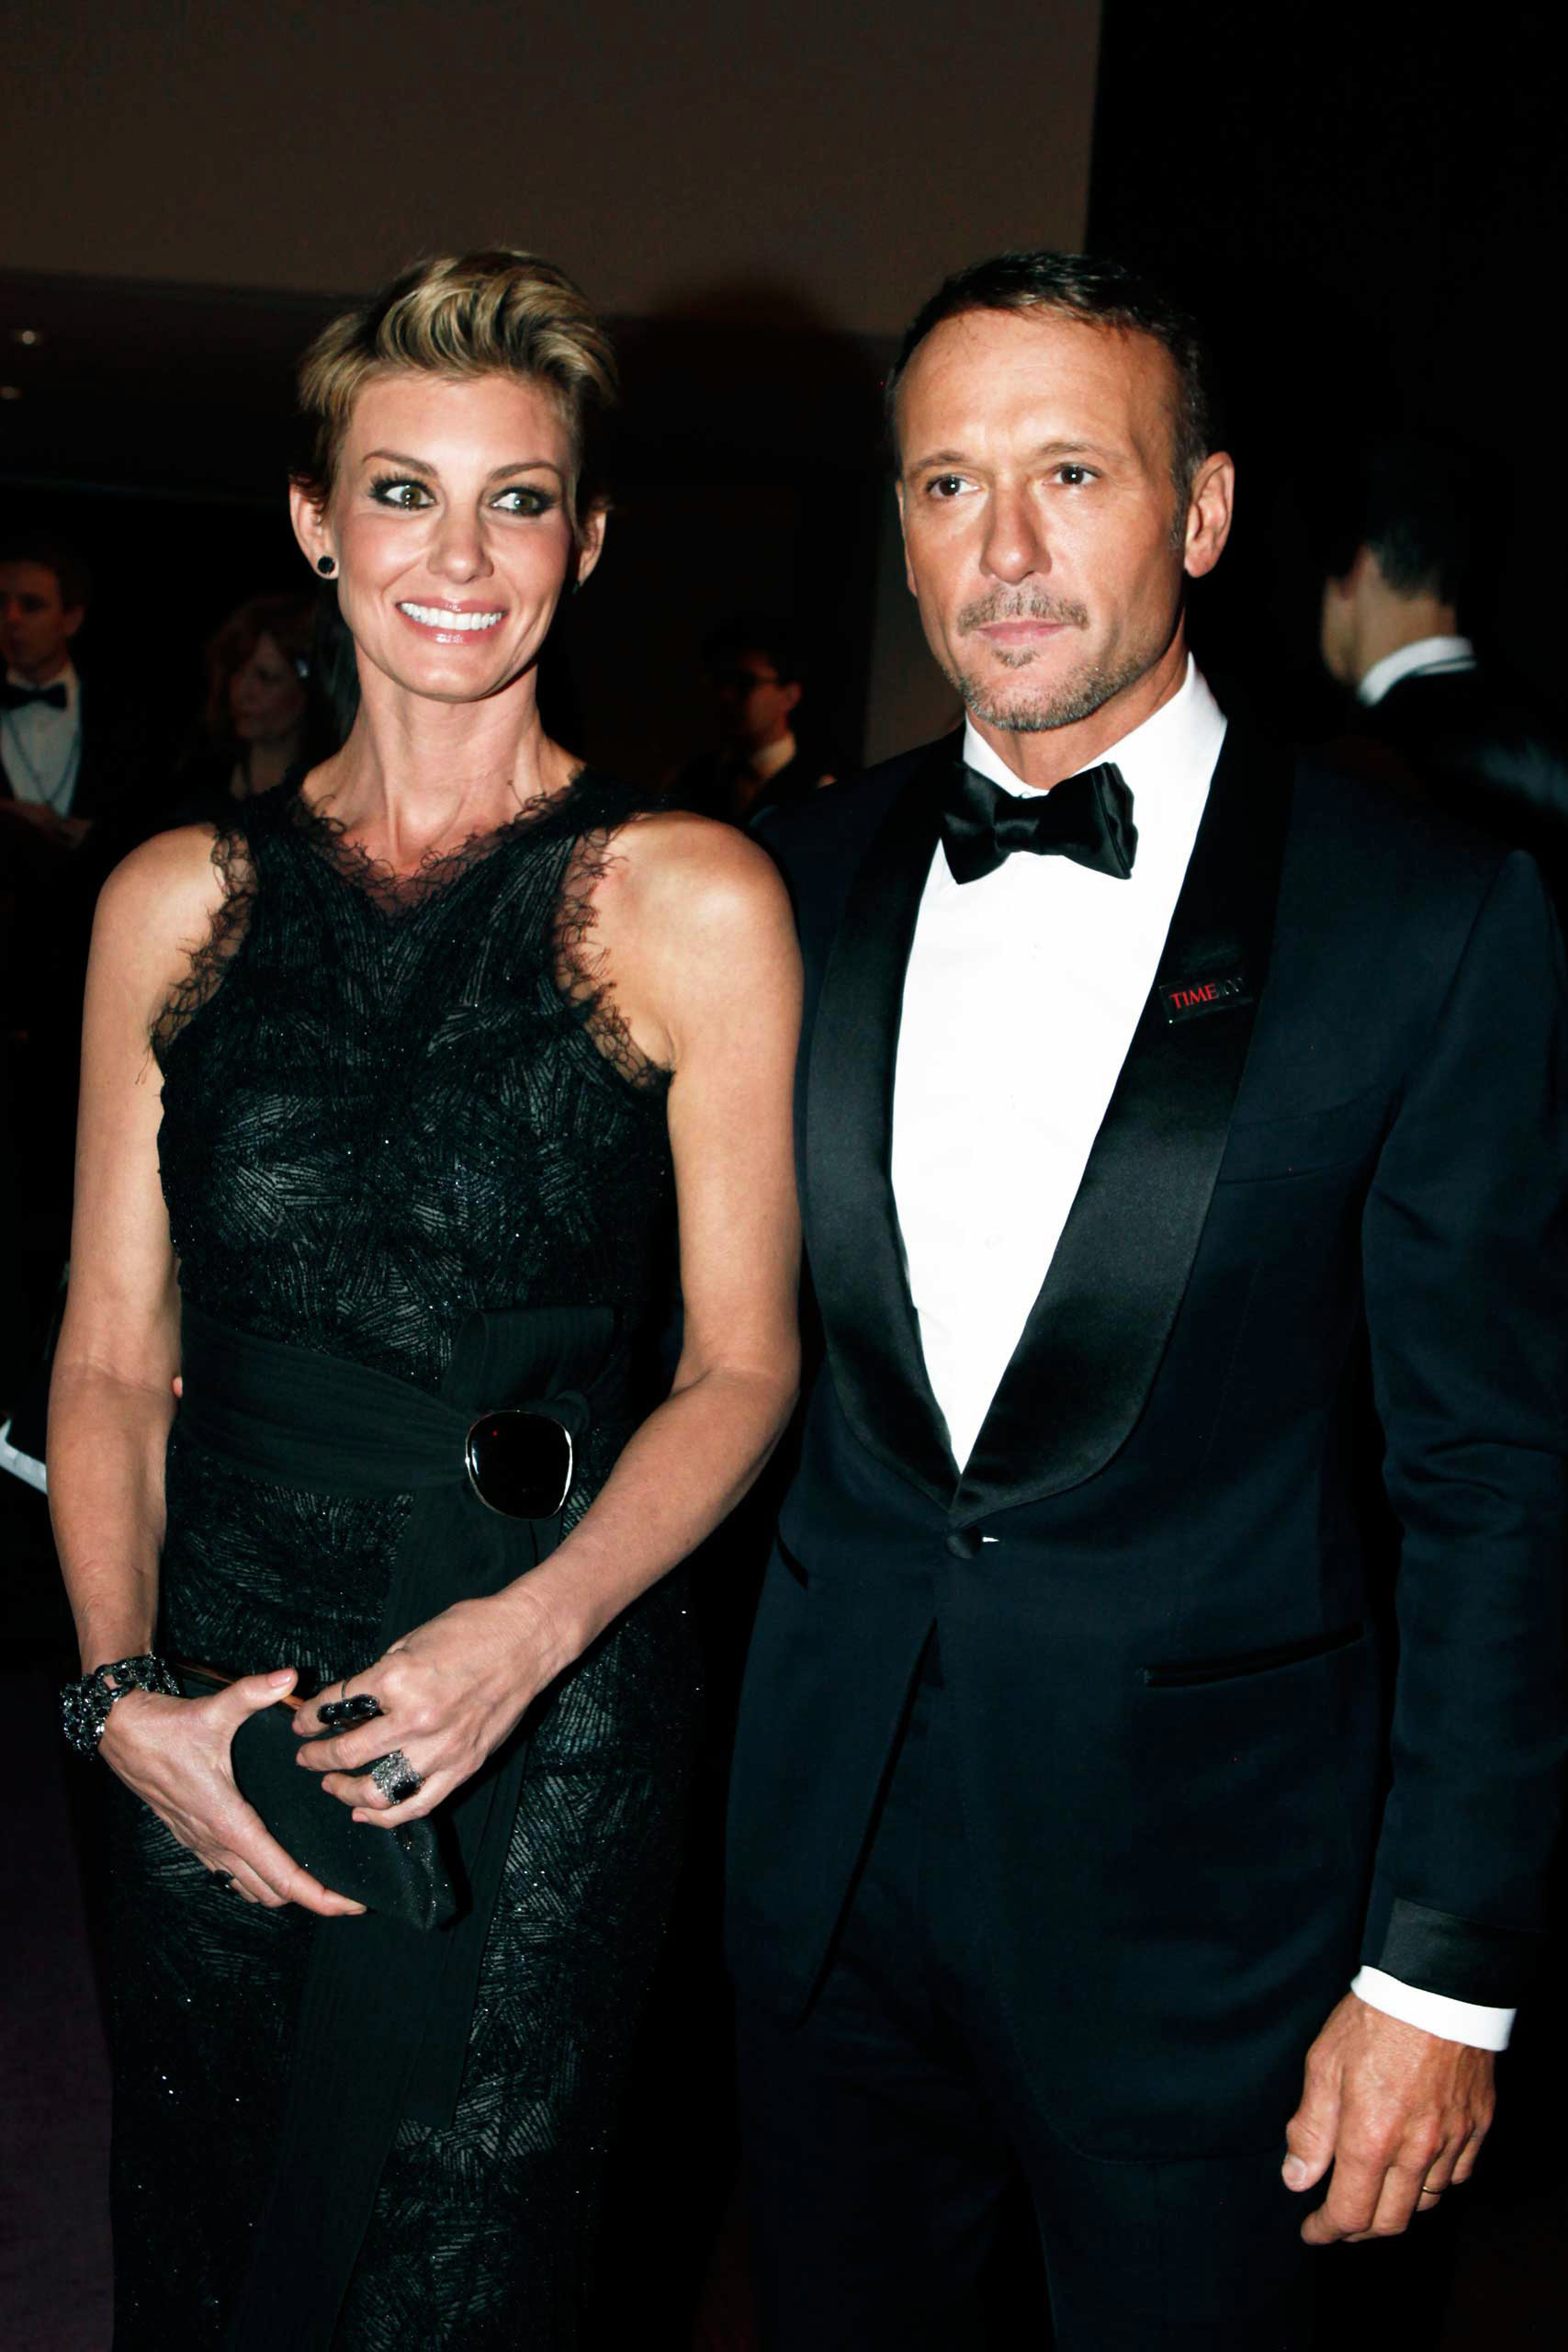 Faith Hill and Tim McGraw attend the TIME 100 Gala at Jazz at Lincoln Center in New York, NY, on Apr. 21, 2015.